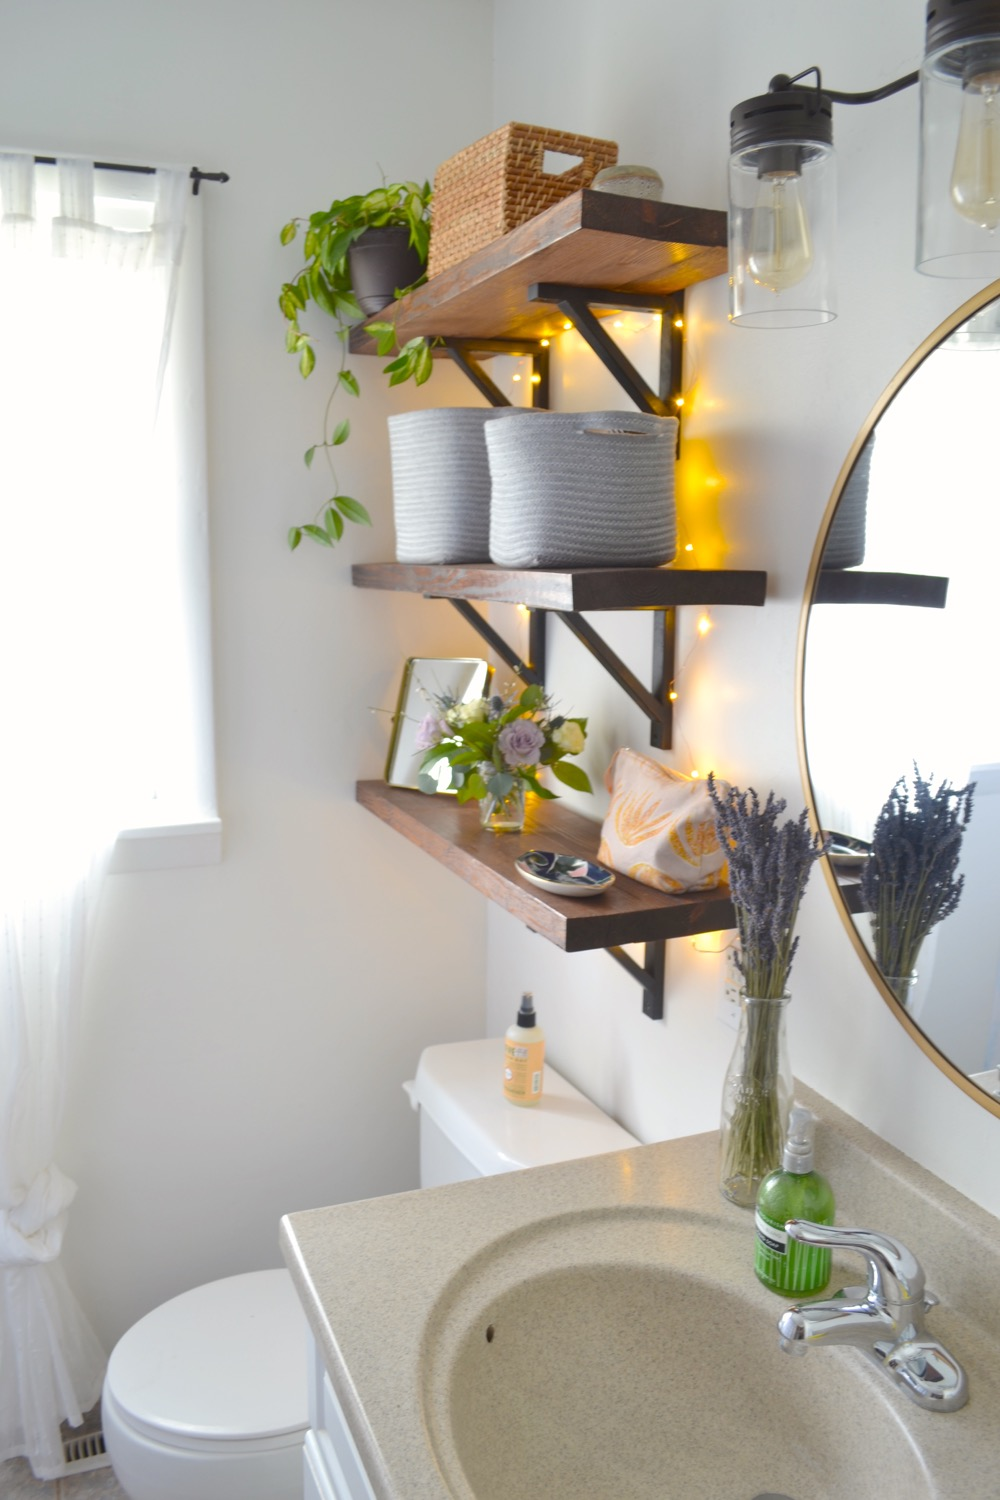 Small-bathroom-makeover-budget2.jpg